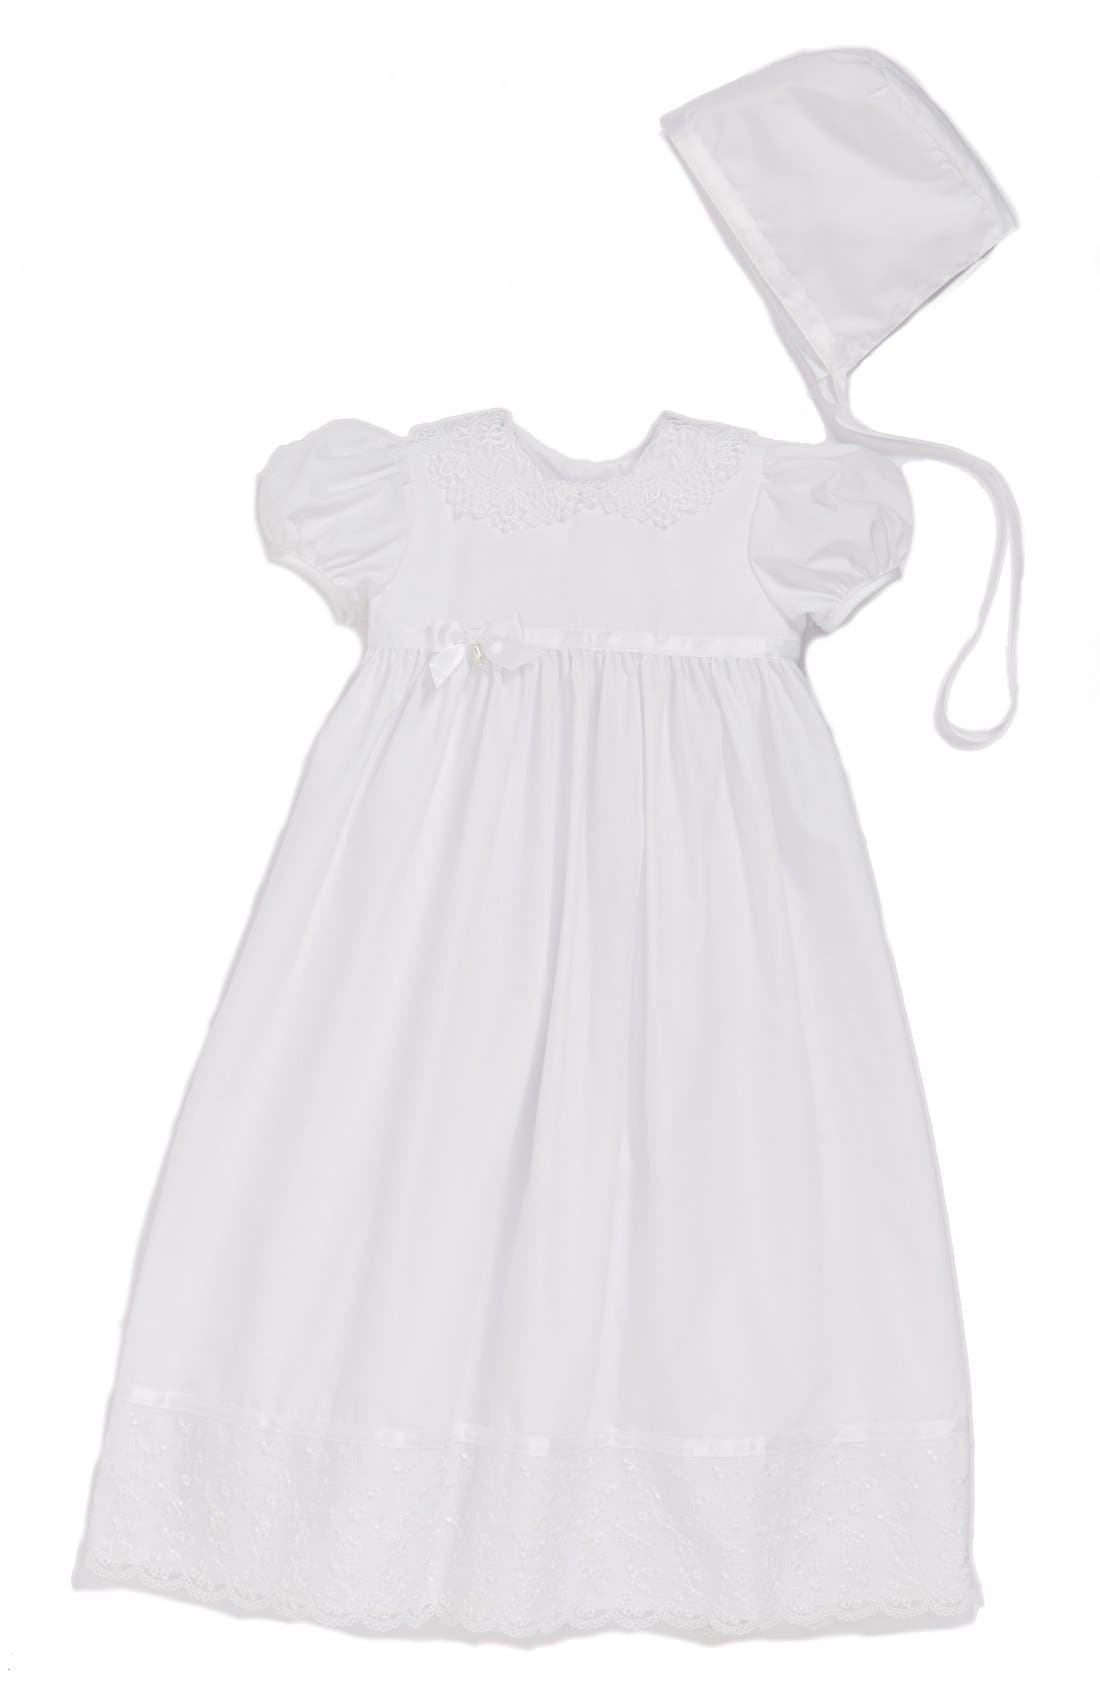 Alternate Image 1 Selected - Little Things Mean a Lot Lace Collar Christening Gown and Bonnet Set (Baby Girls)